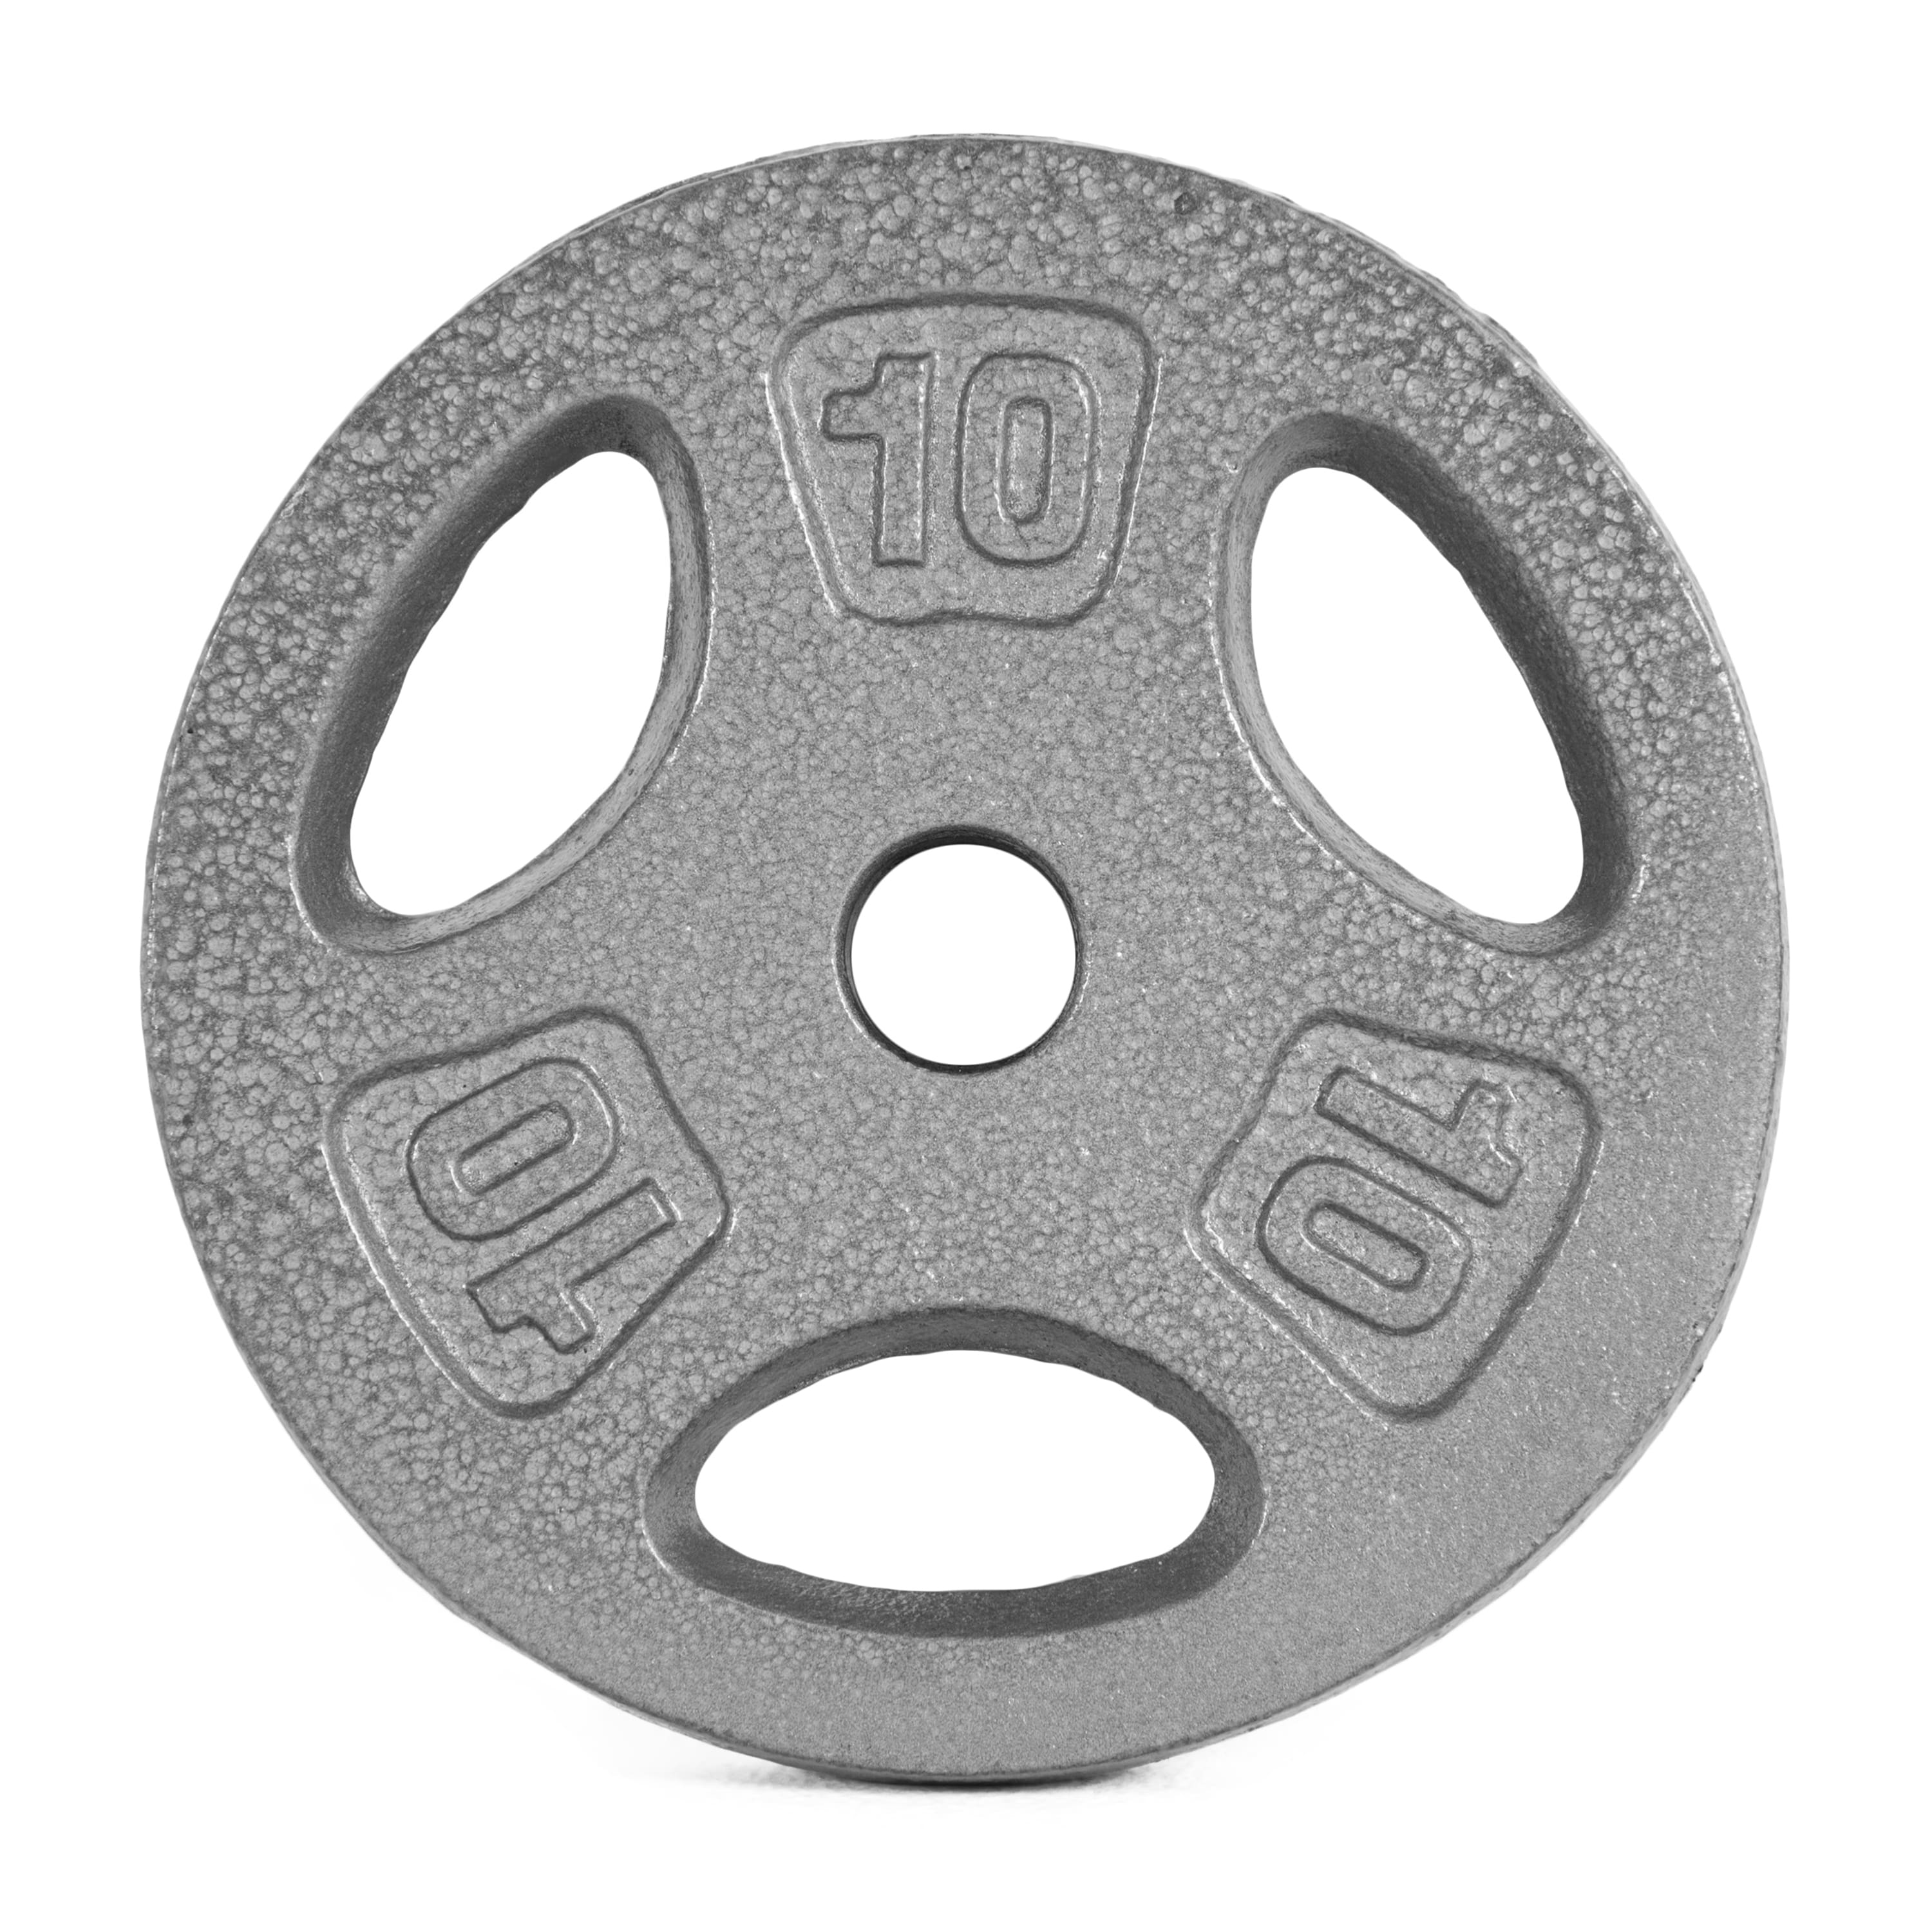 CAP Barbell Standard Weightlifting Plate $2.92 with free shipping on $35+ at Walmart